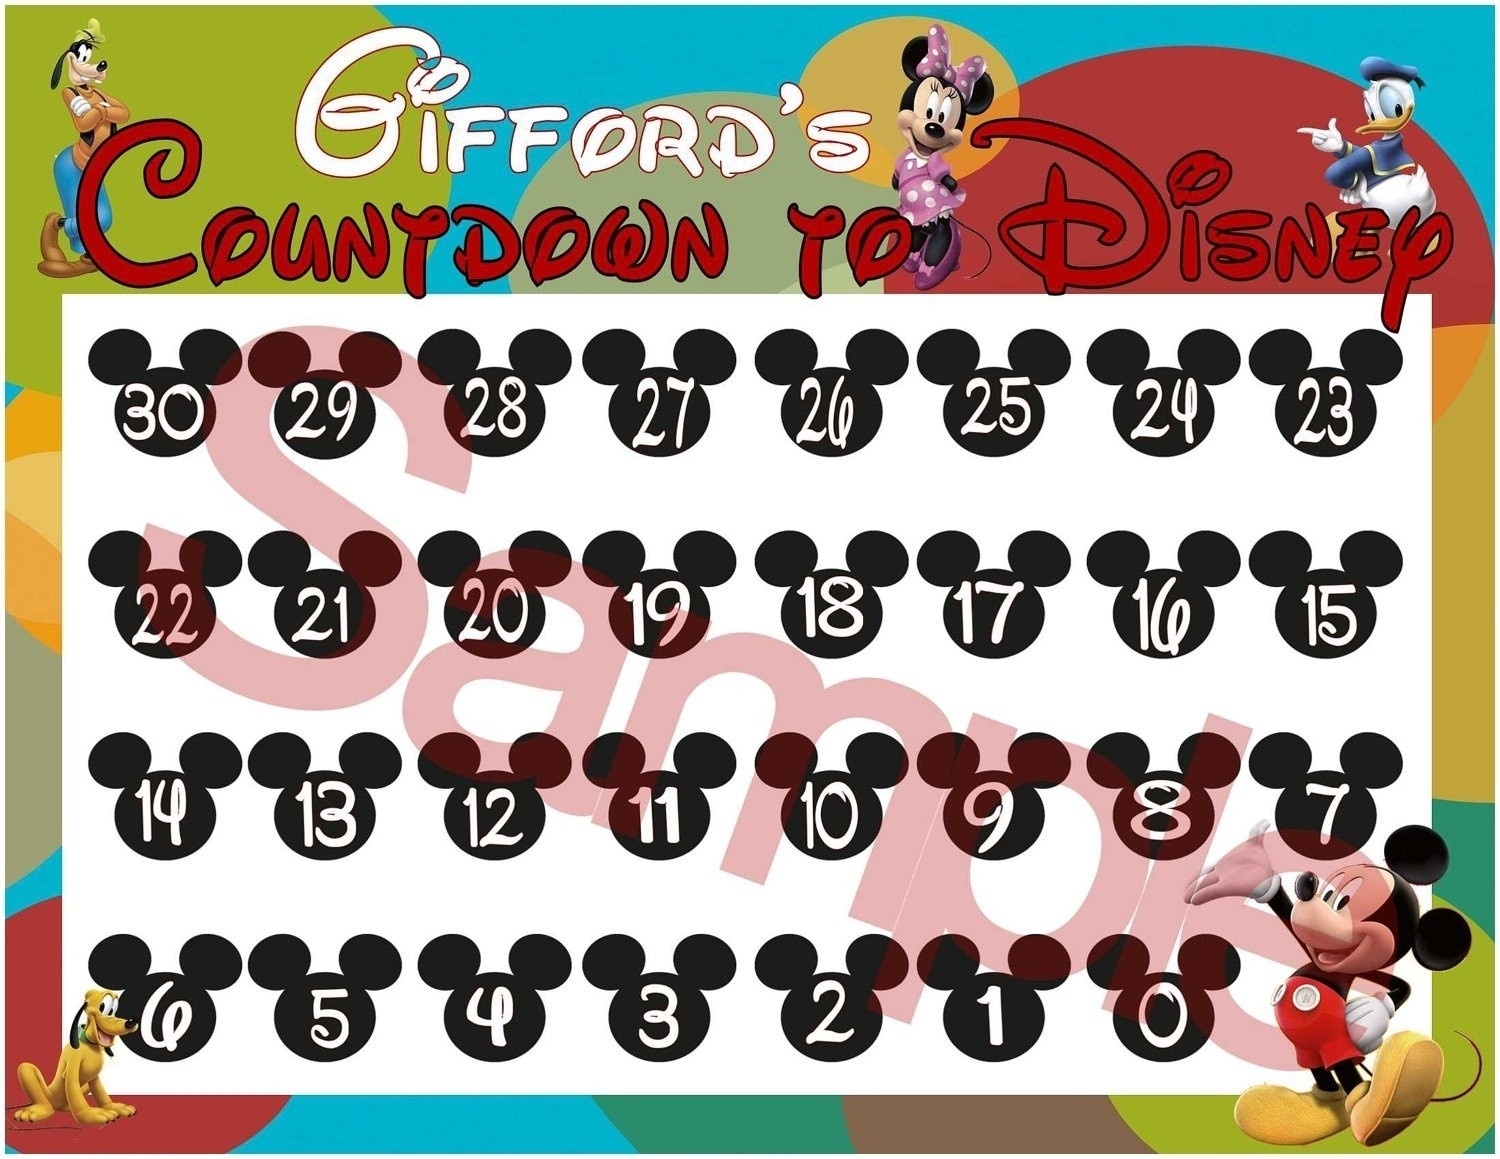 Countdown Calendar To Disney Vacation • Printable Blank-Disney Countdown Calendar Template